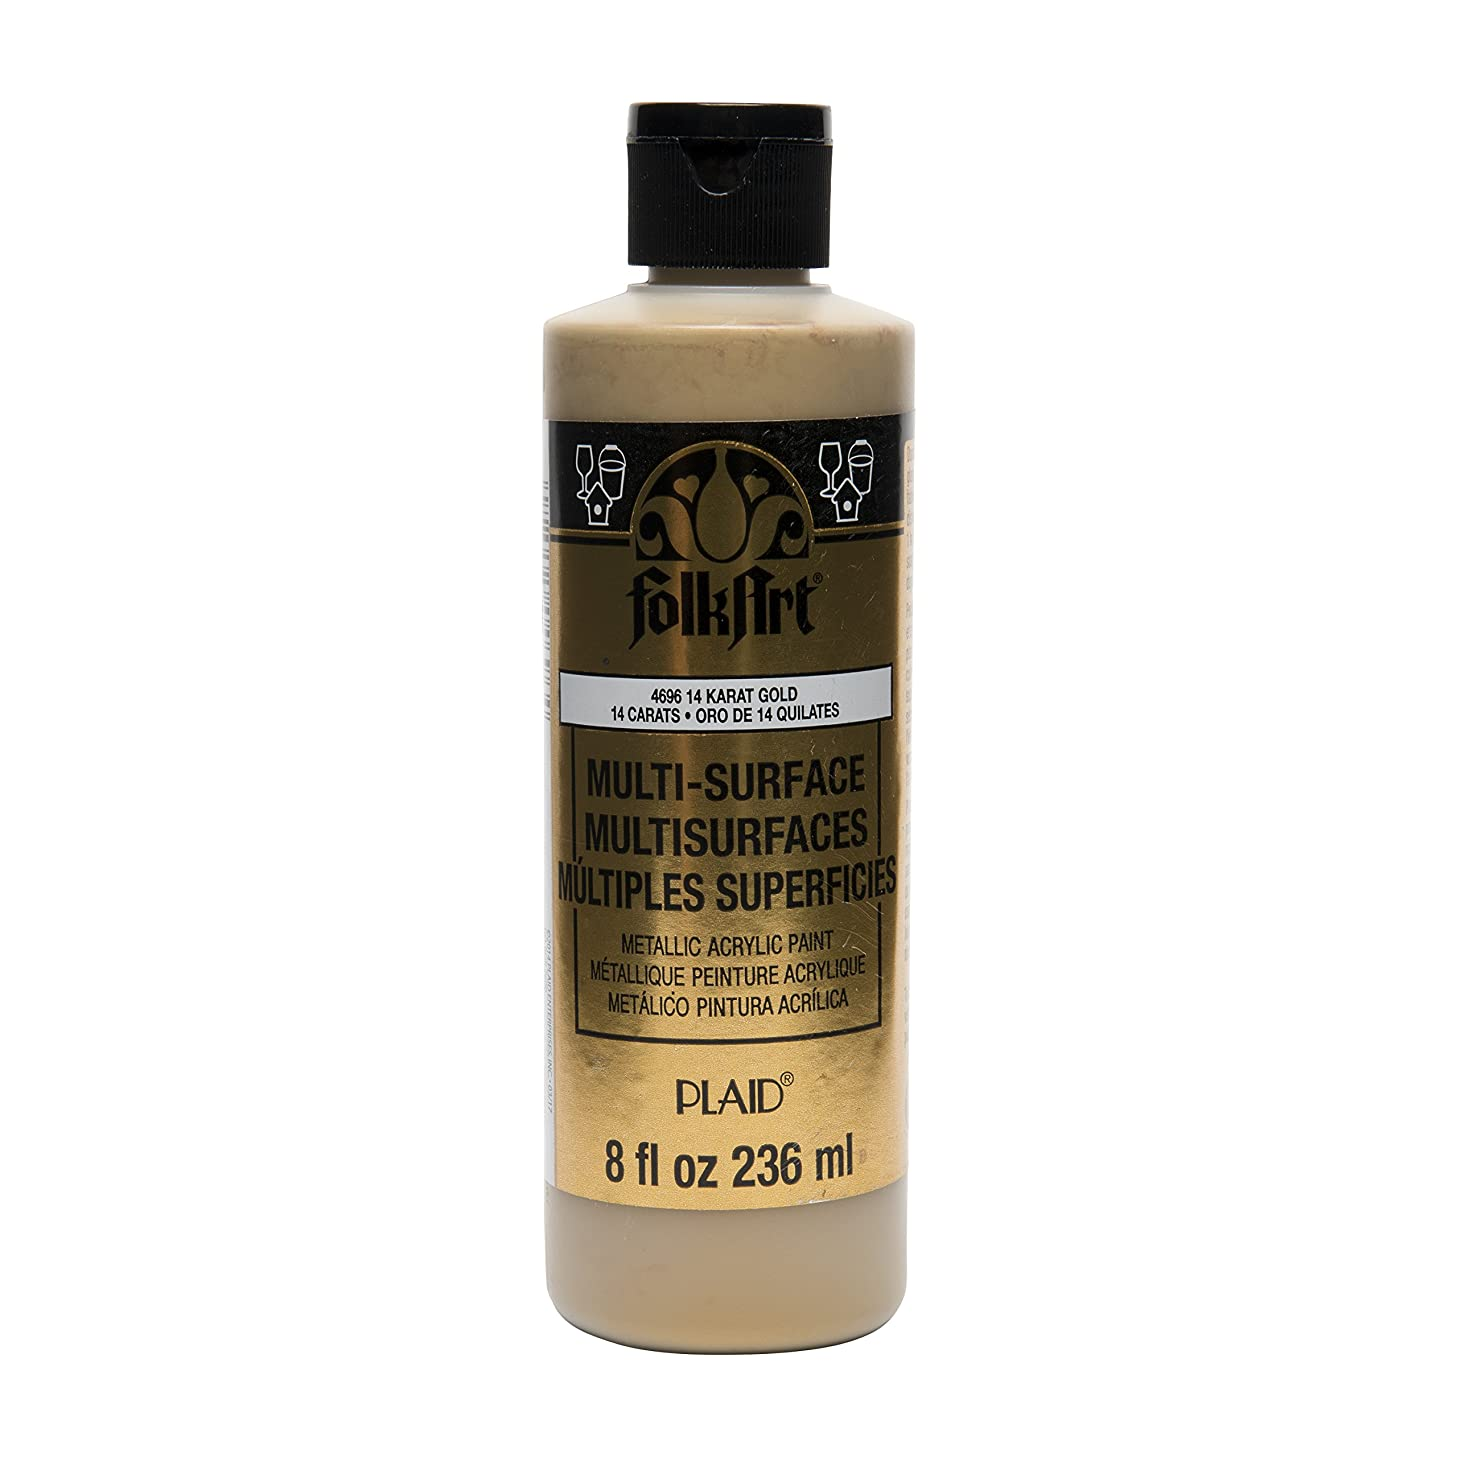 FolkArt Multi Surface Specialty Effect Paint in Assorted Colors (8 oz), 4696 Metallic 14K Gold